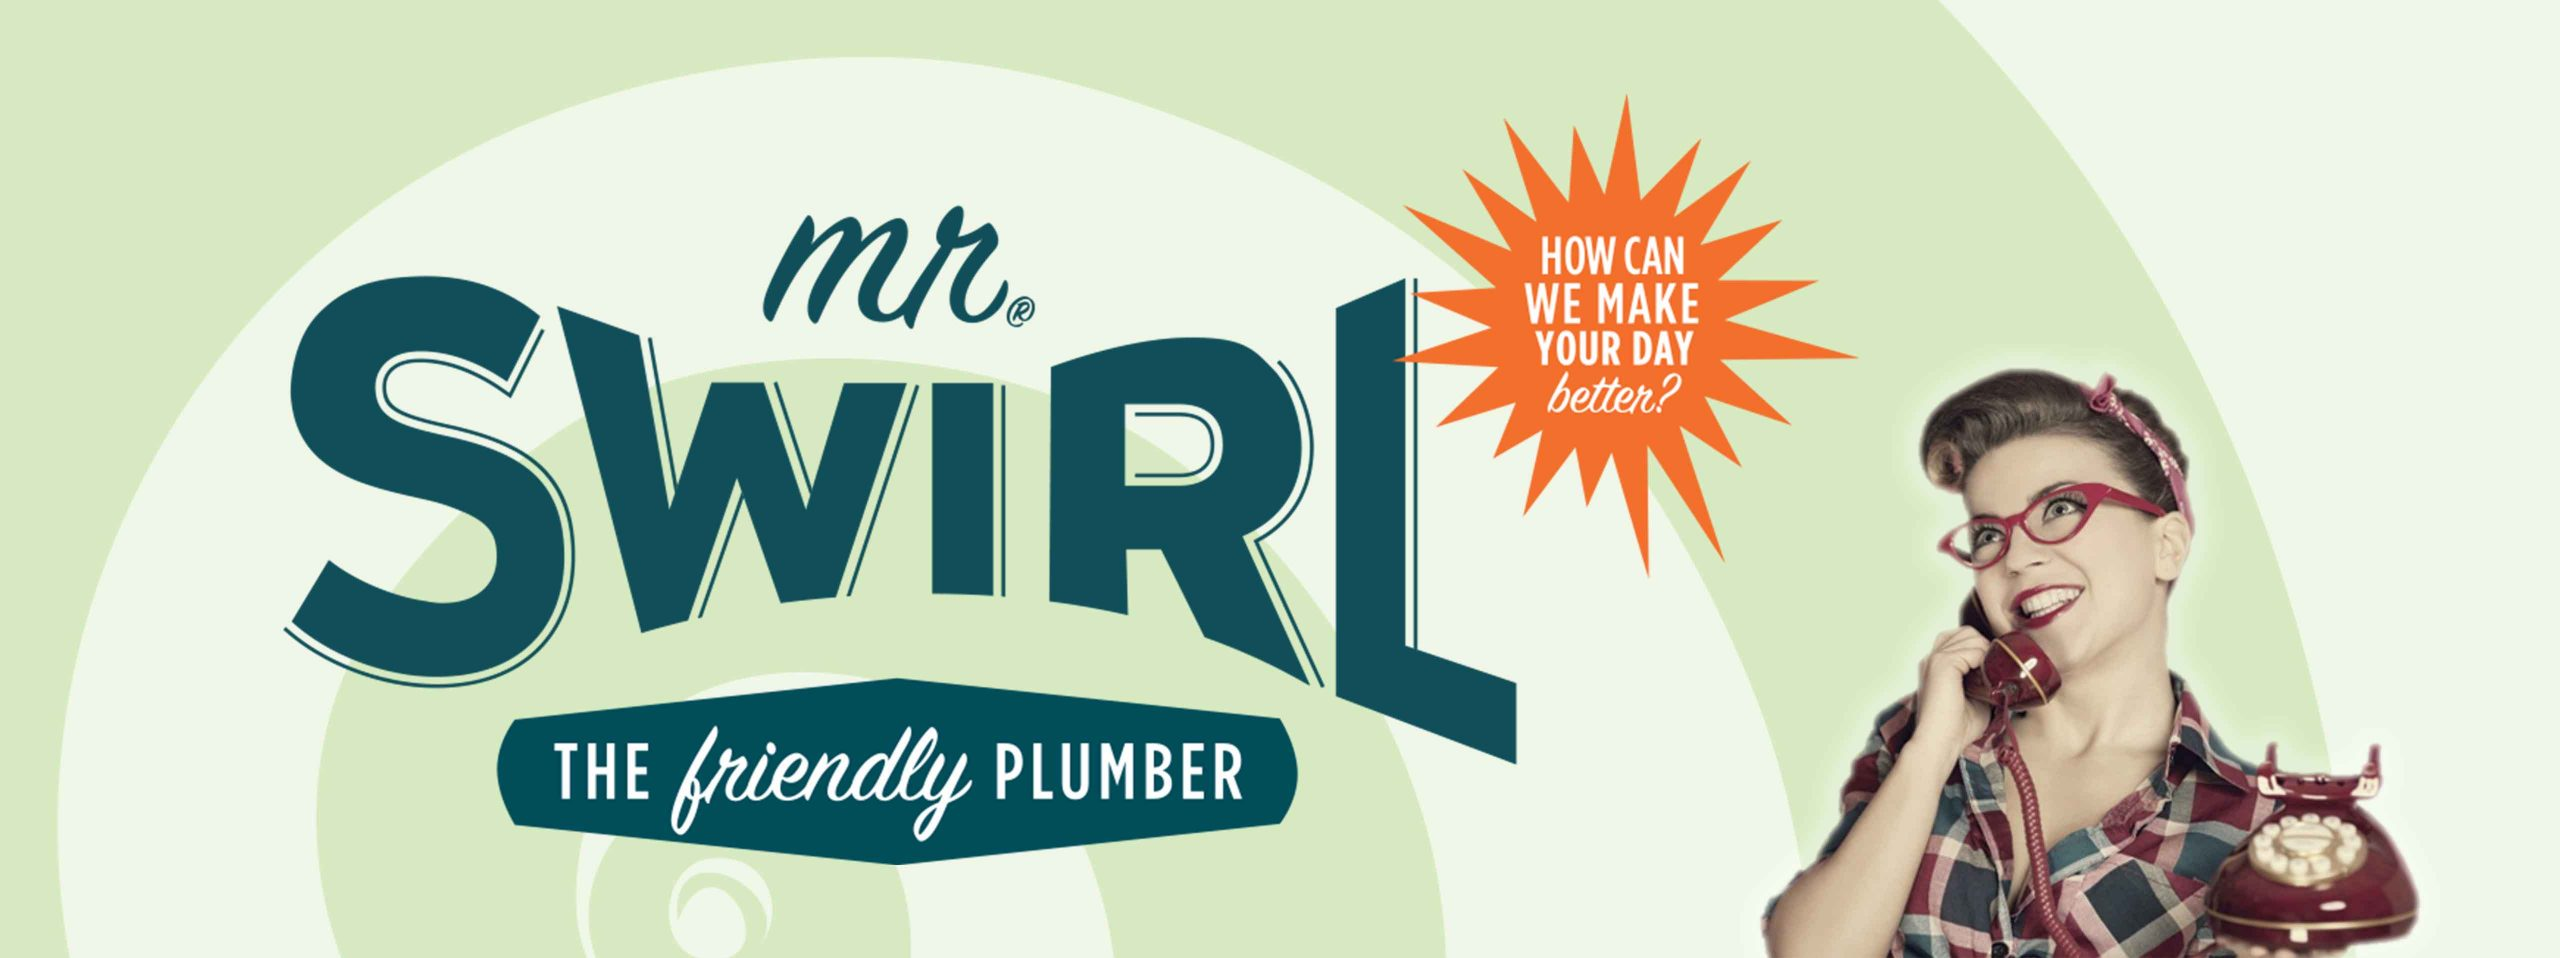 Mr Swirl logo - how can we make your day better?